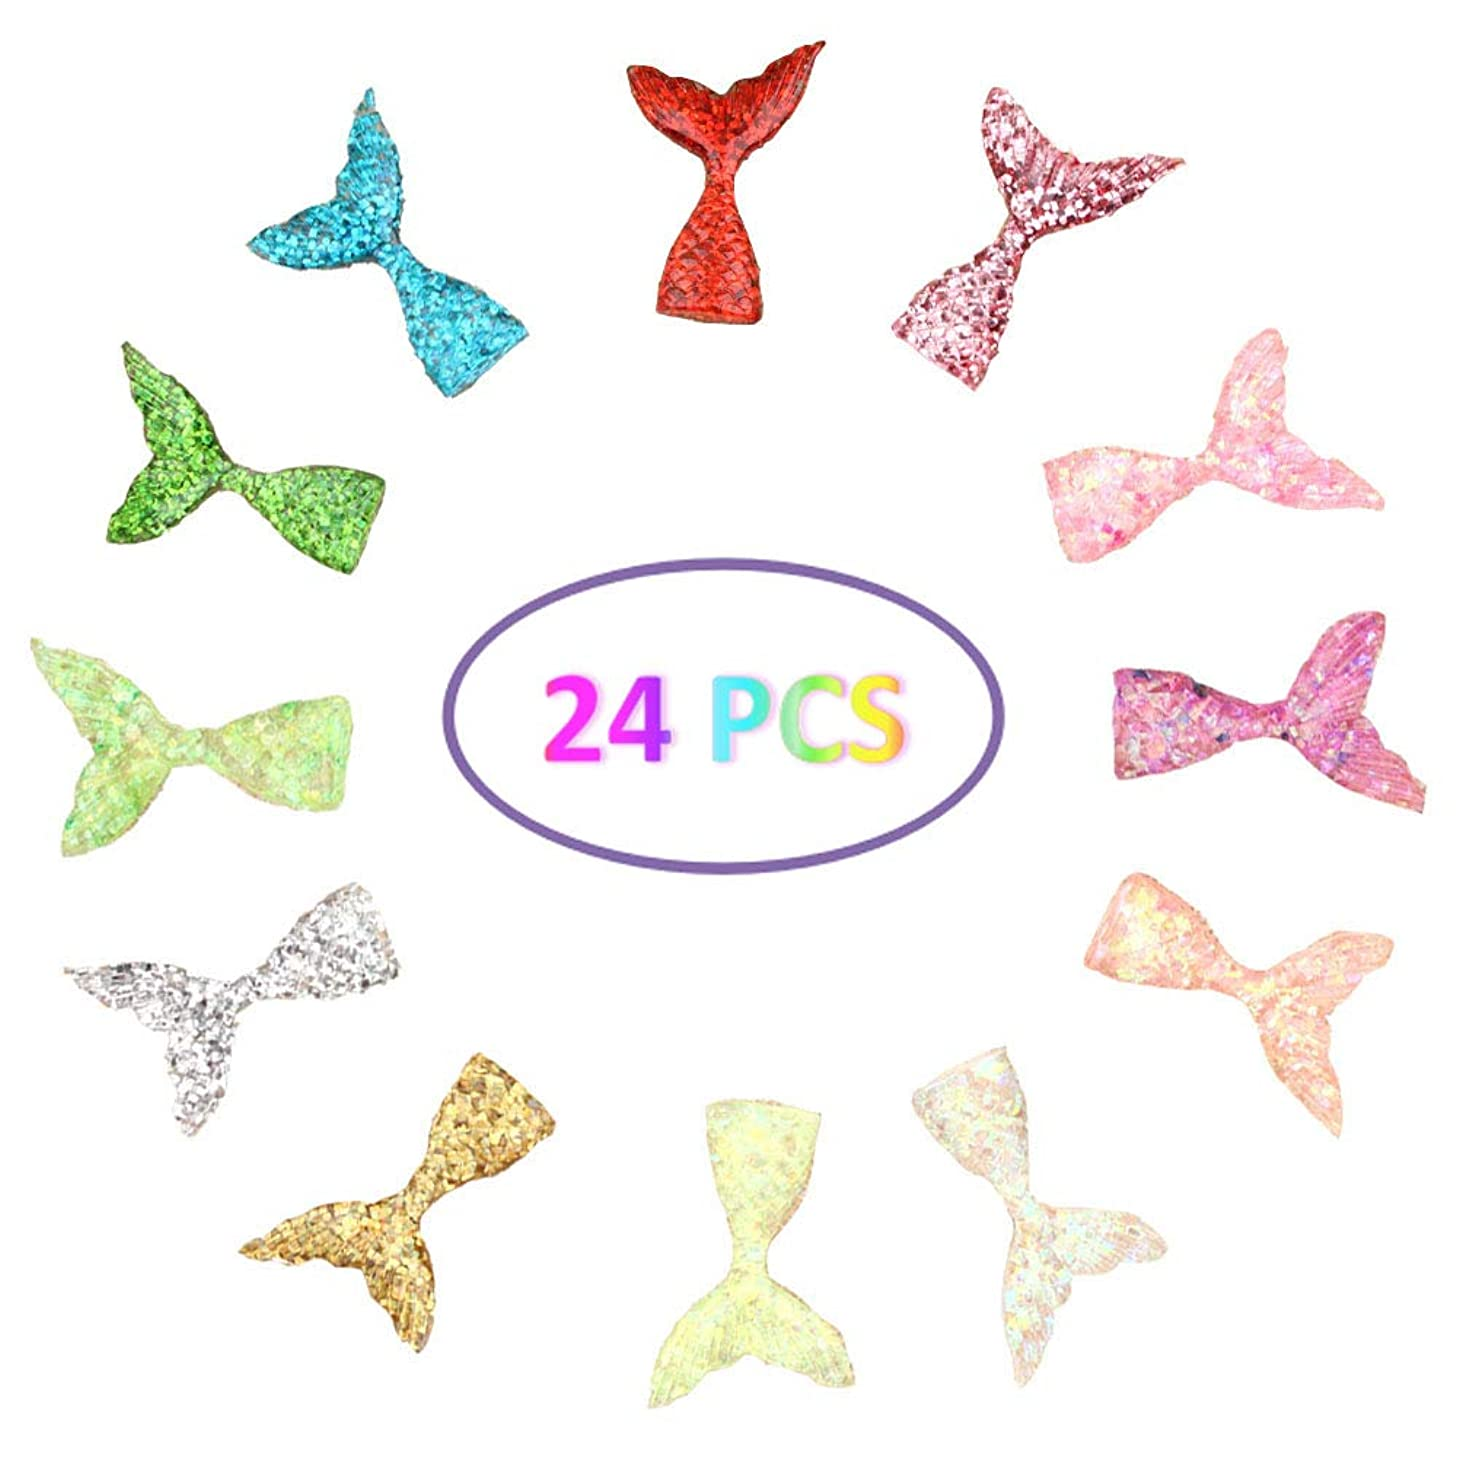 24 Pcs Slime Charms with Mermaid Tail Mini Flatback of Slime Beads Giltter for Ornament Scrapbooking DIY Crafts (One Size 24 pcs, Multicolored-3)